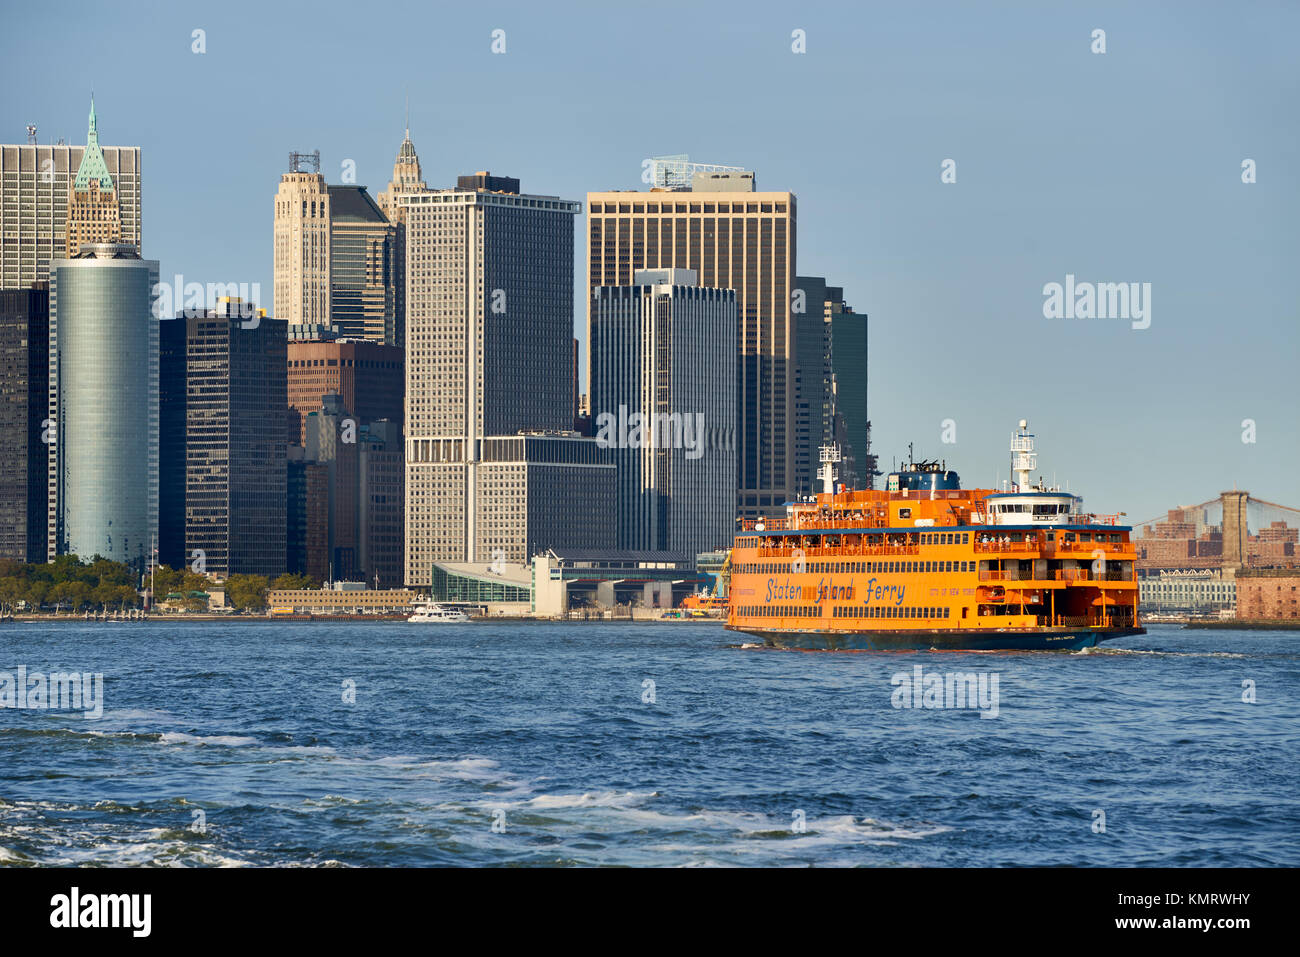 Quartier des gratte-ciel et le Staten Island Ferry. Lower Manhattan, New York City Harbour Photo Stock